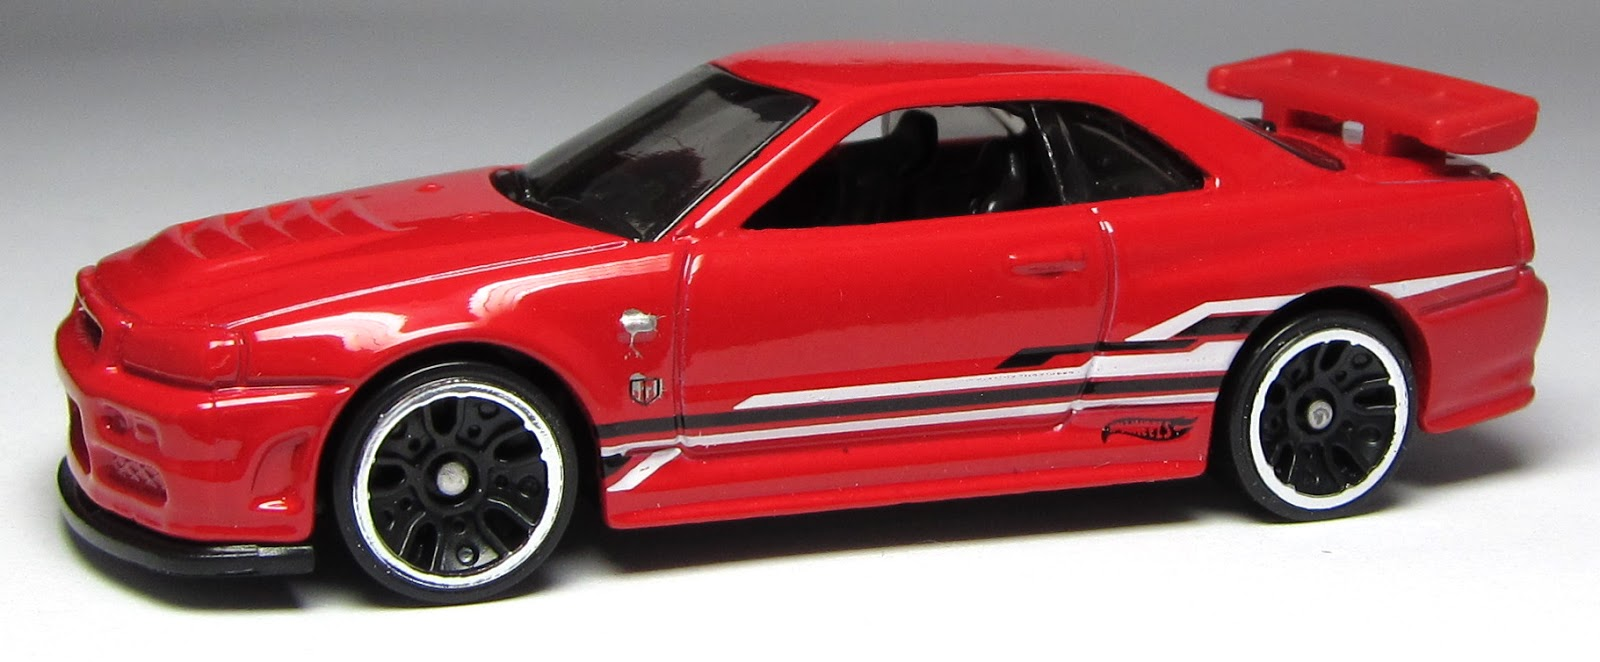 First Look Hot Wheels Nissan Skyline Gt R R34 Thelamleygroup